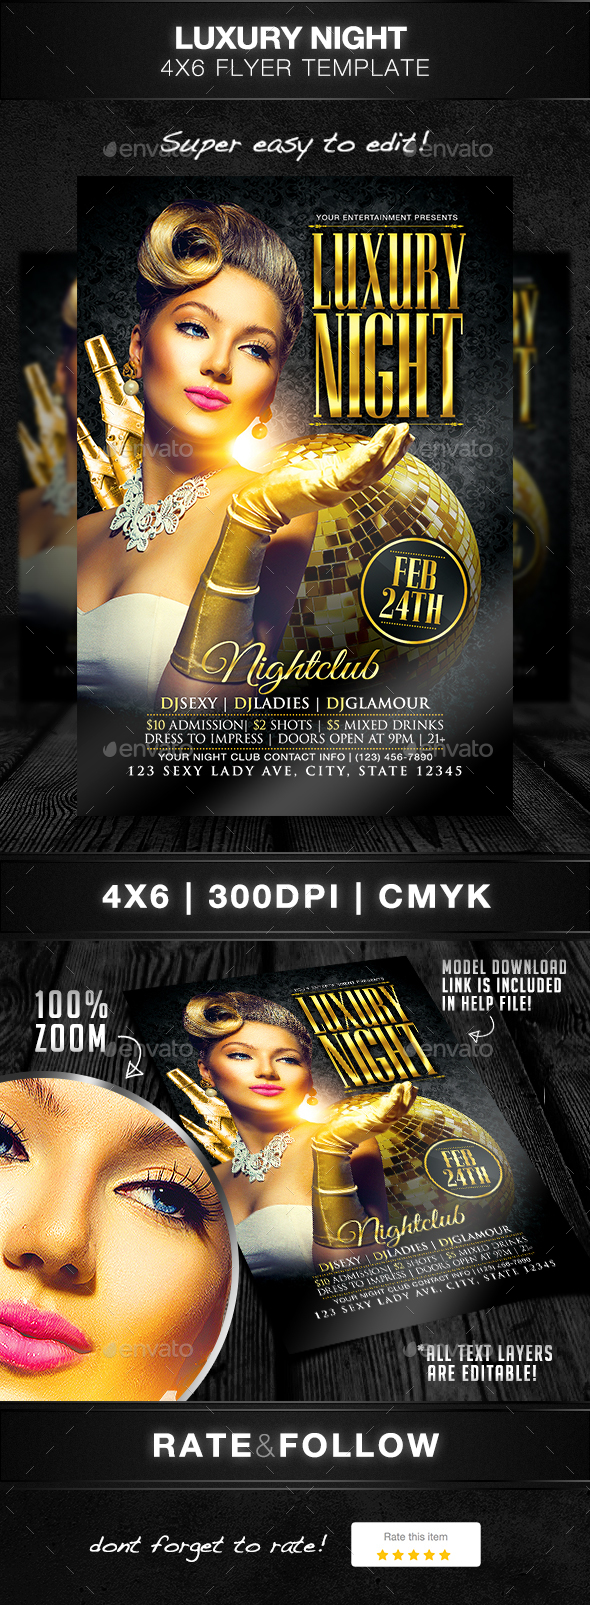 Luxury Night Flyer Template - Clubs & Parties Events